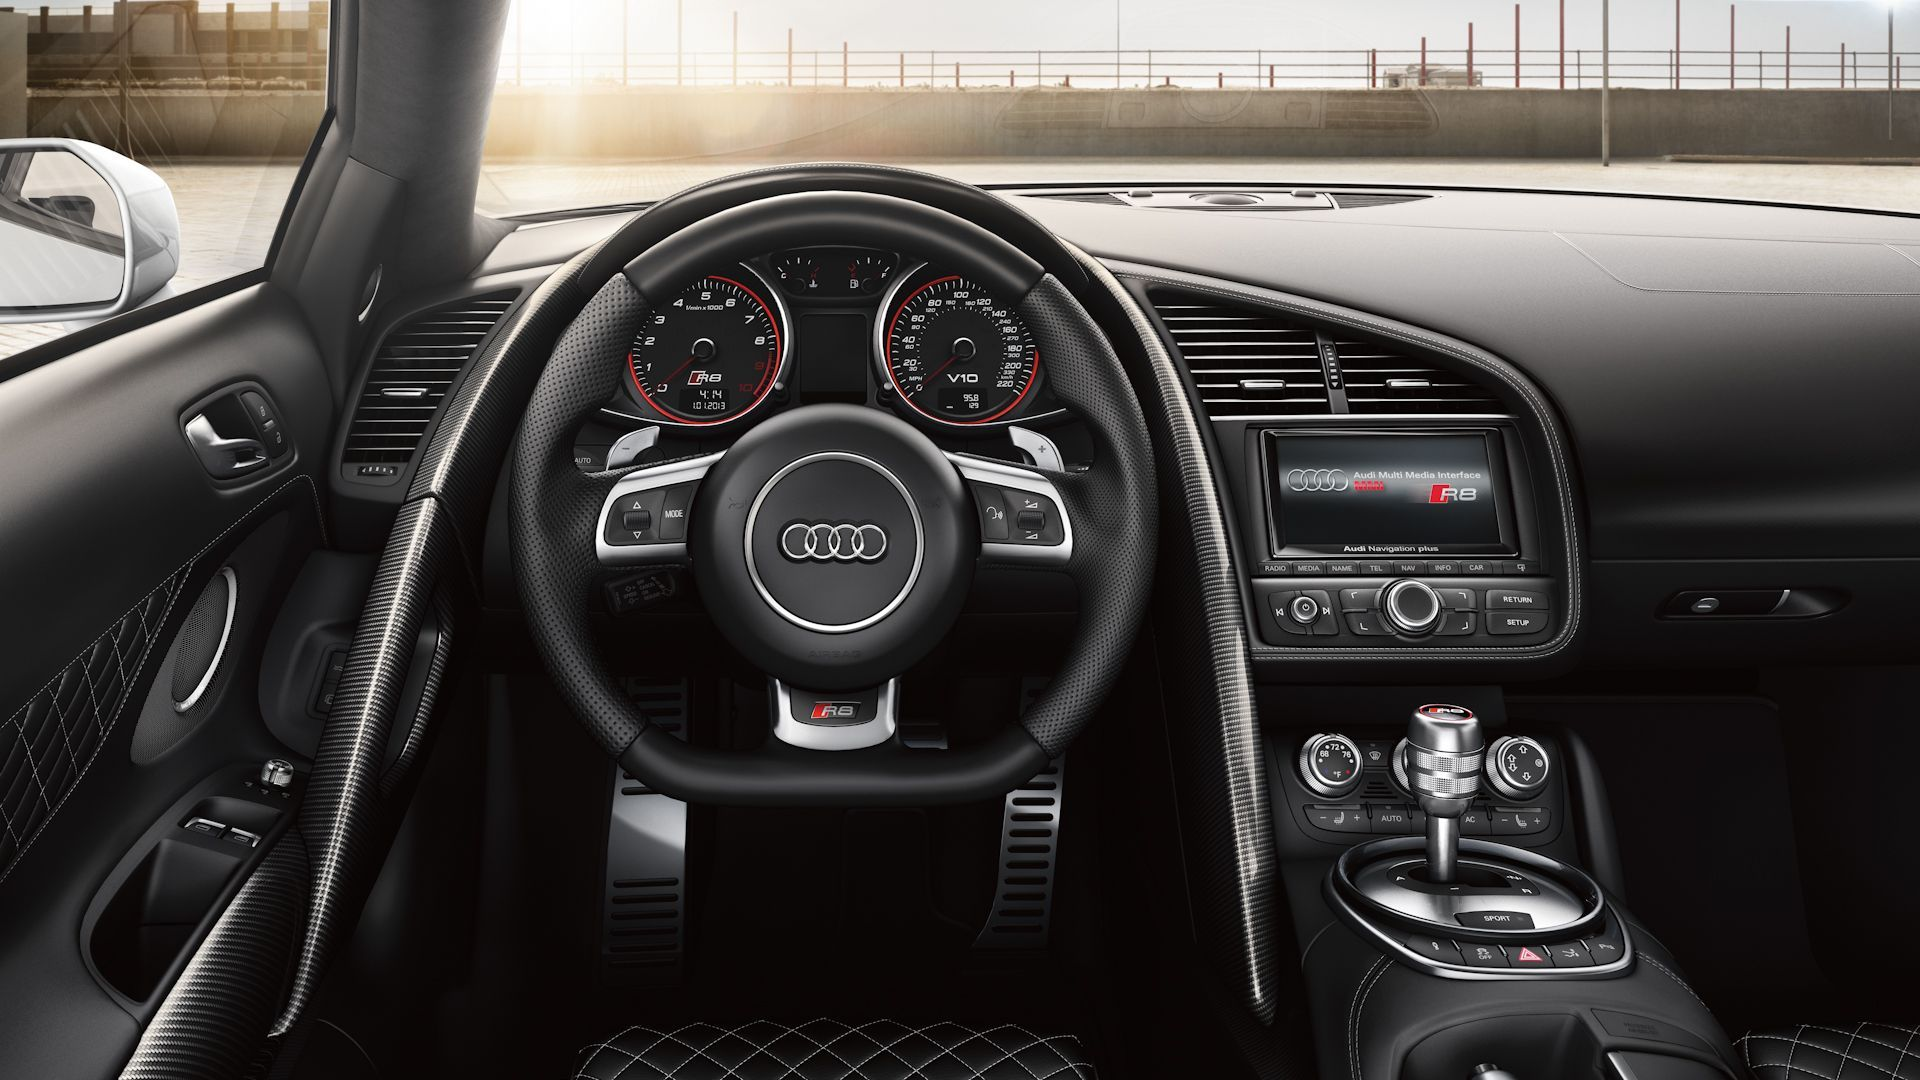 2015 Audi R8 Spyder Interior Dashboard Wallpaper Audi Usa Audi